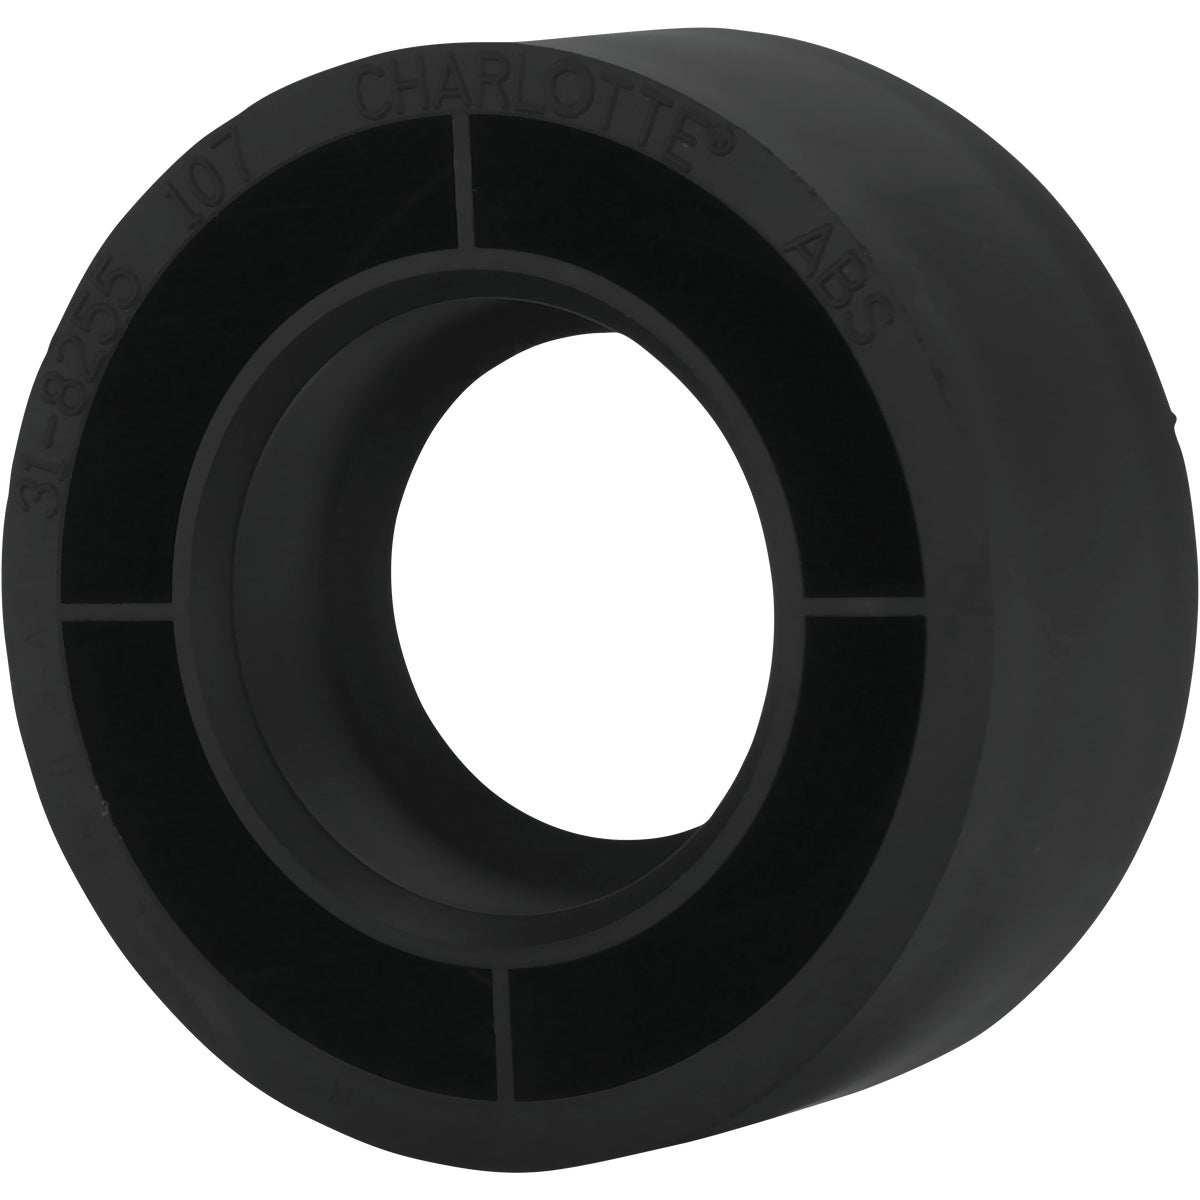 3X1-1/2 ABS BUSHING - 80231 by Genova Inc  Abs